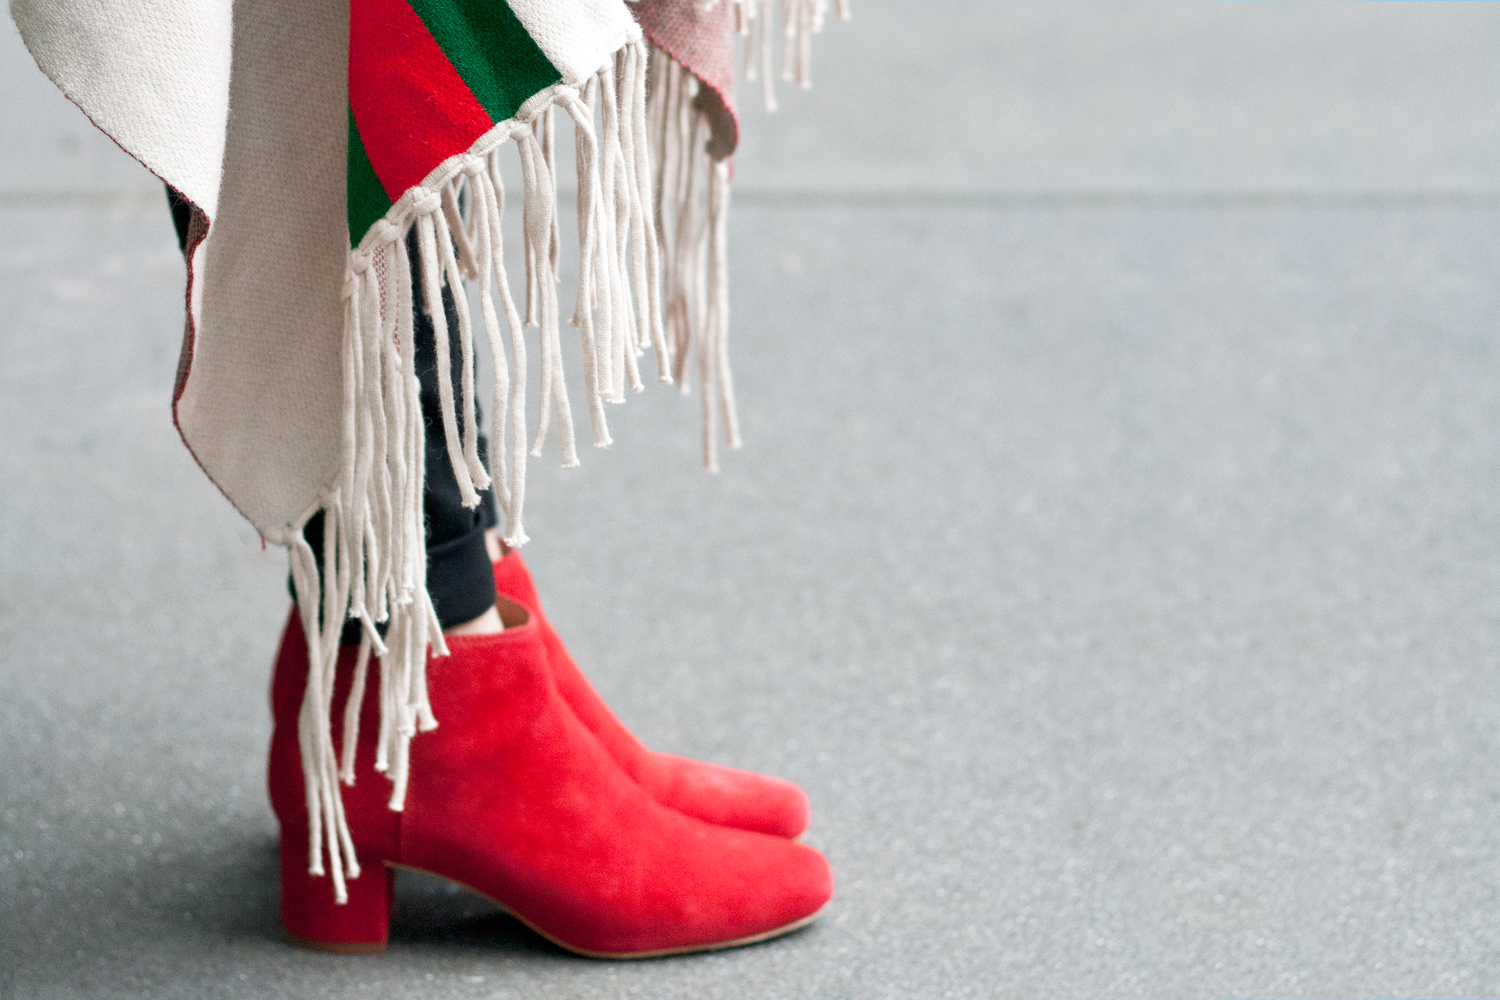 02madewell-red-suede-booties-travel-style-fashion